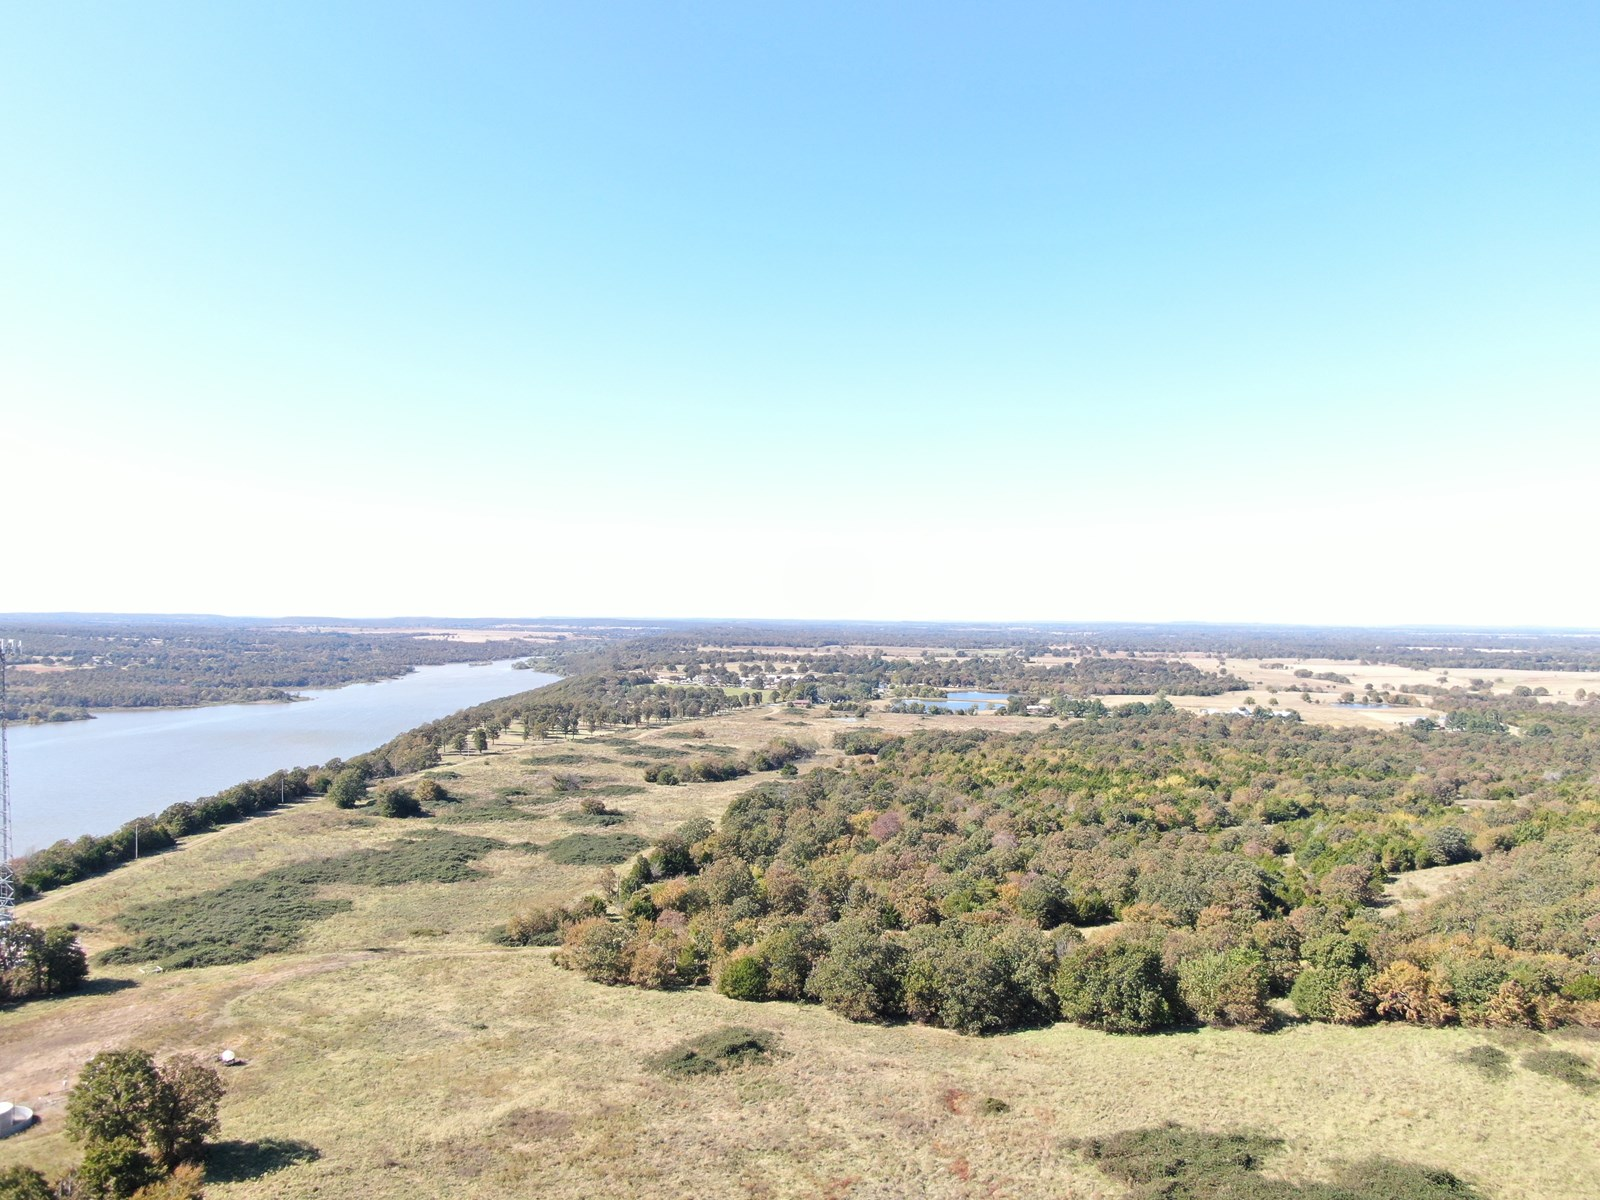 LAND FOR SALE PITTSBURG COUNTY OK HUNTING PROPERTY LAKE VIEW